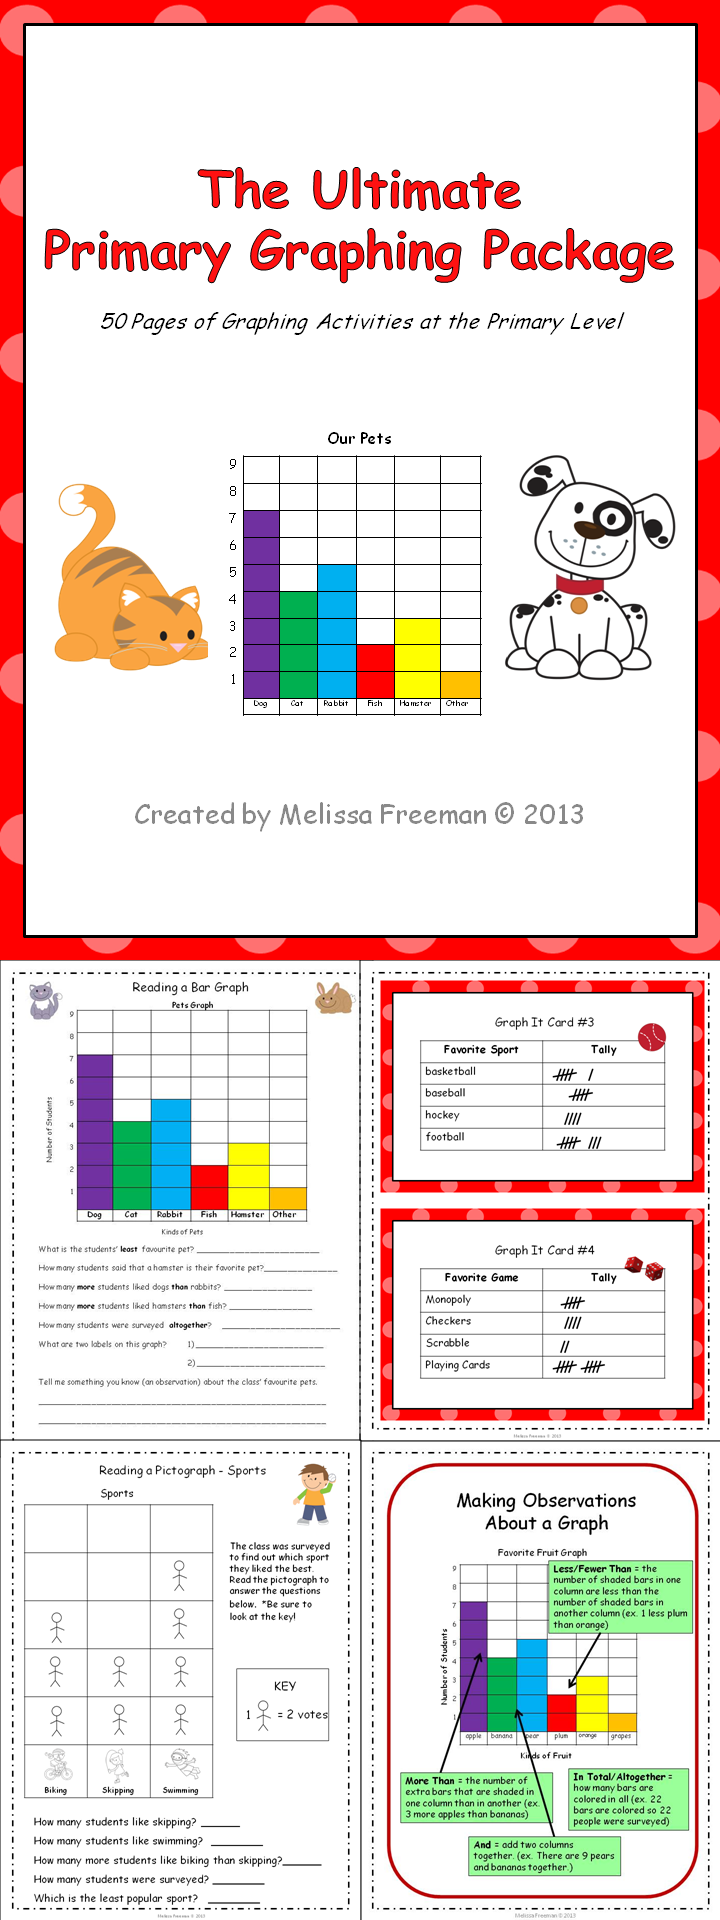 Graphing Activities Bar Graphs Pictographs Graphing Activities Math Lessons Education Math [ 1920 x 720 Pixel ]